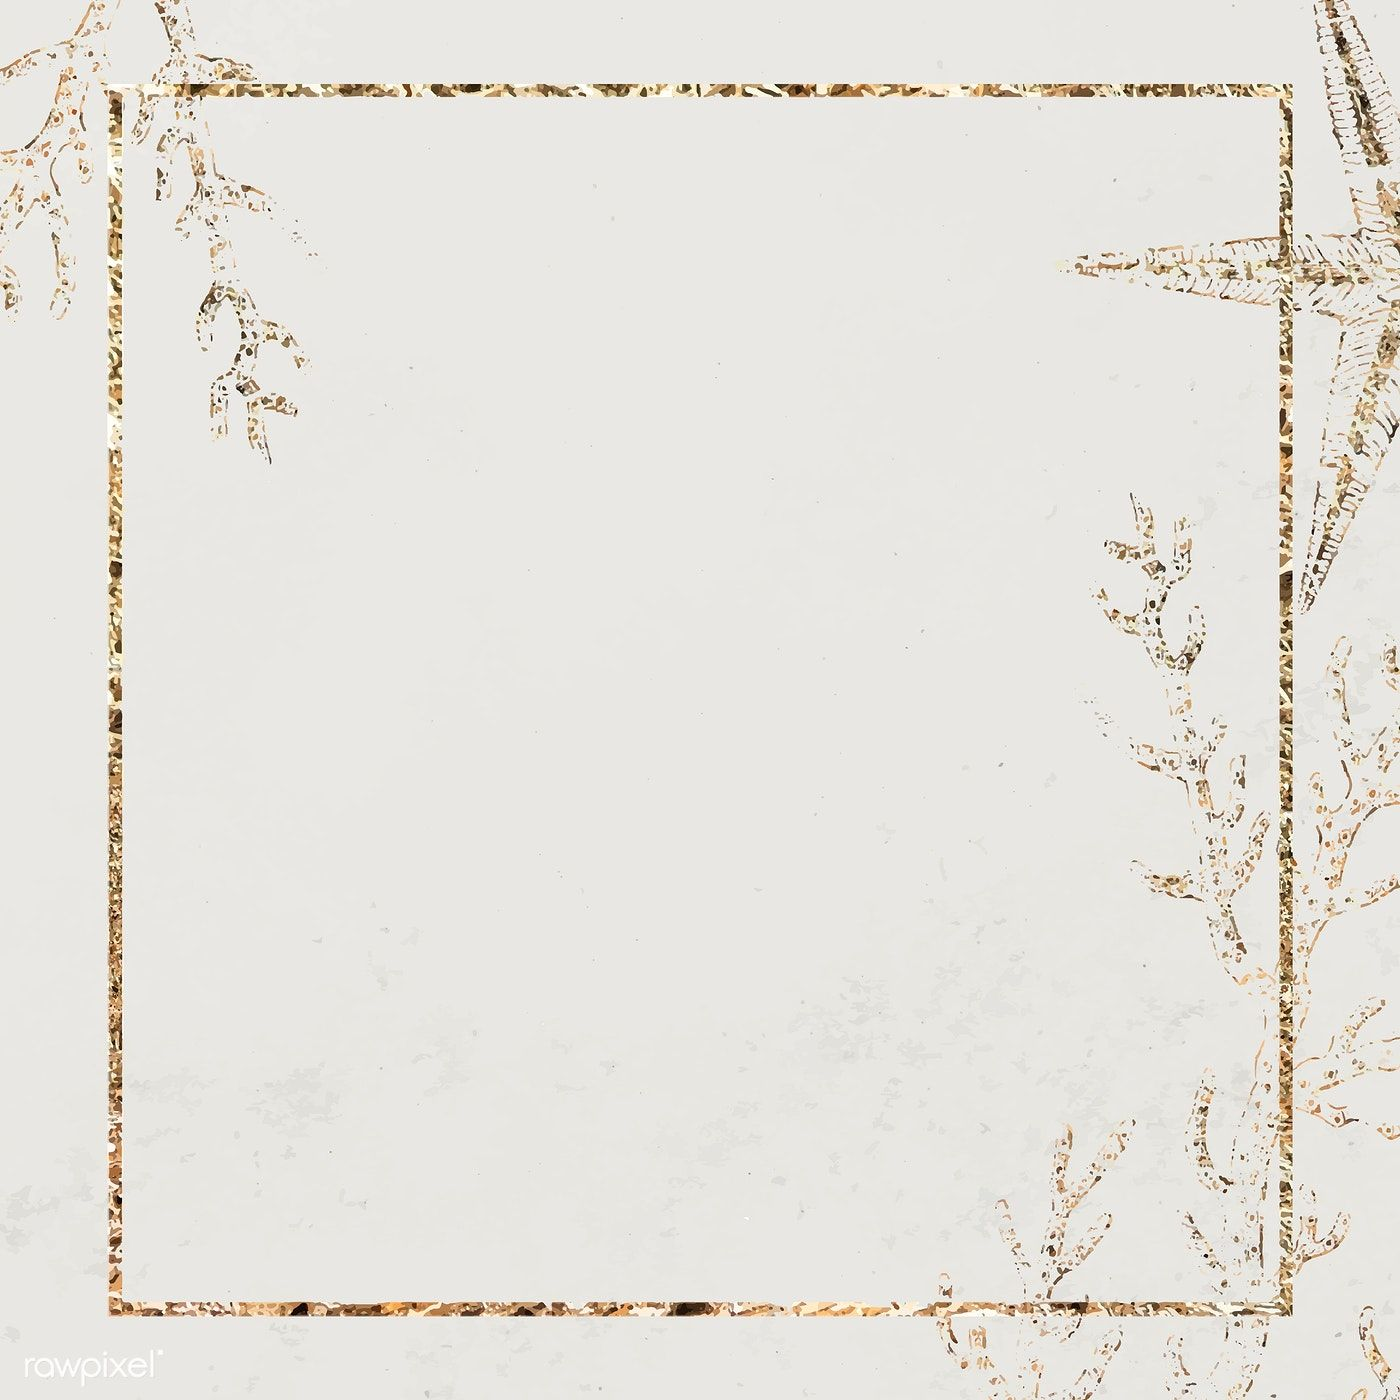 Download And Share Clipart About Gold Frame Border Square Golden Frame Png Find More High Quality Free Transparent Png Cli Bingkai Kartu Undangan Pernikahan